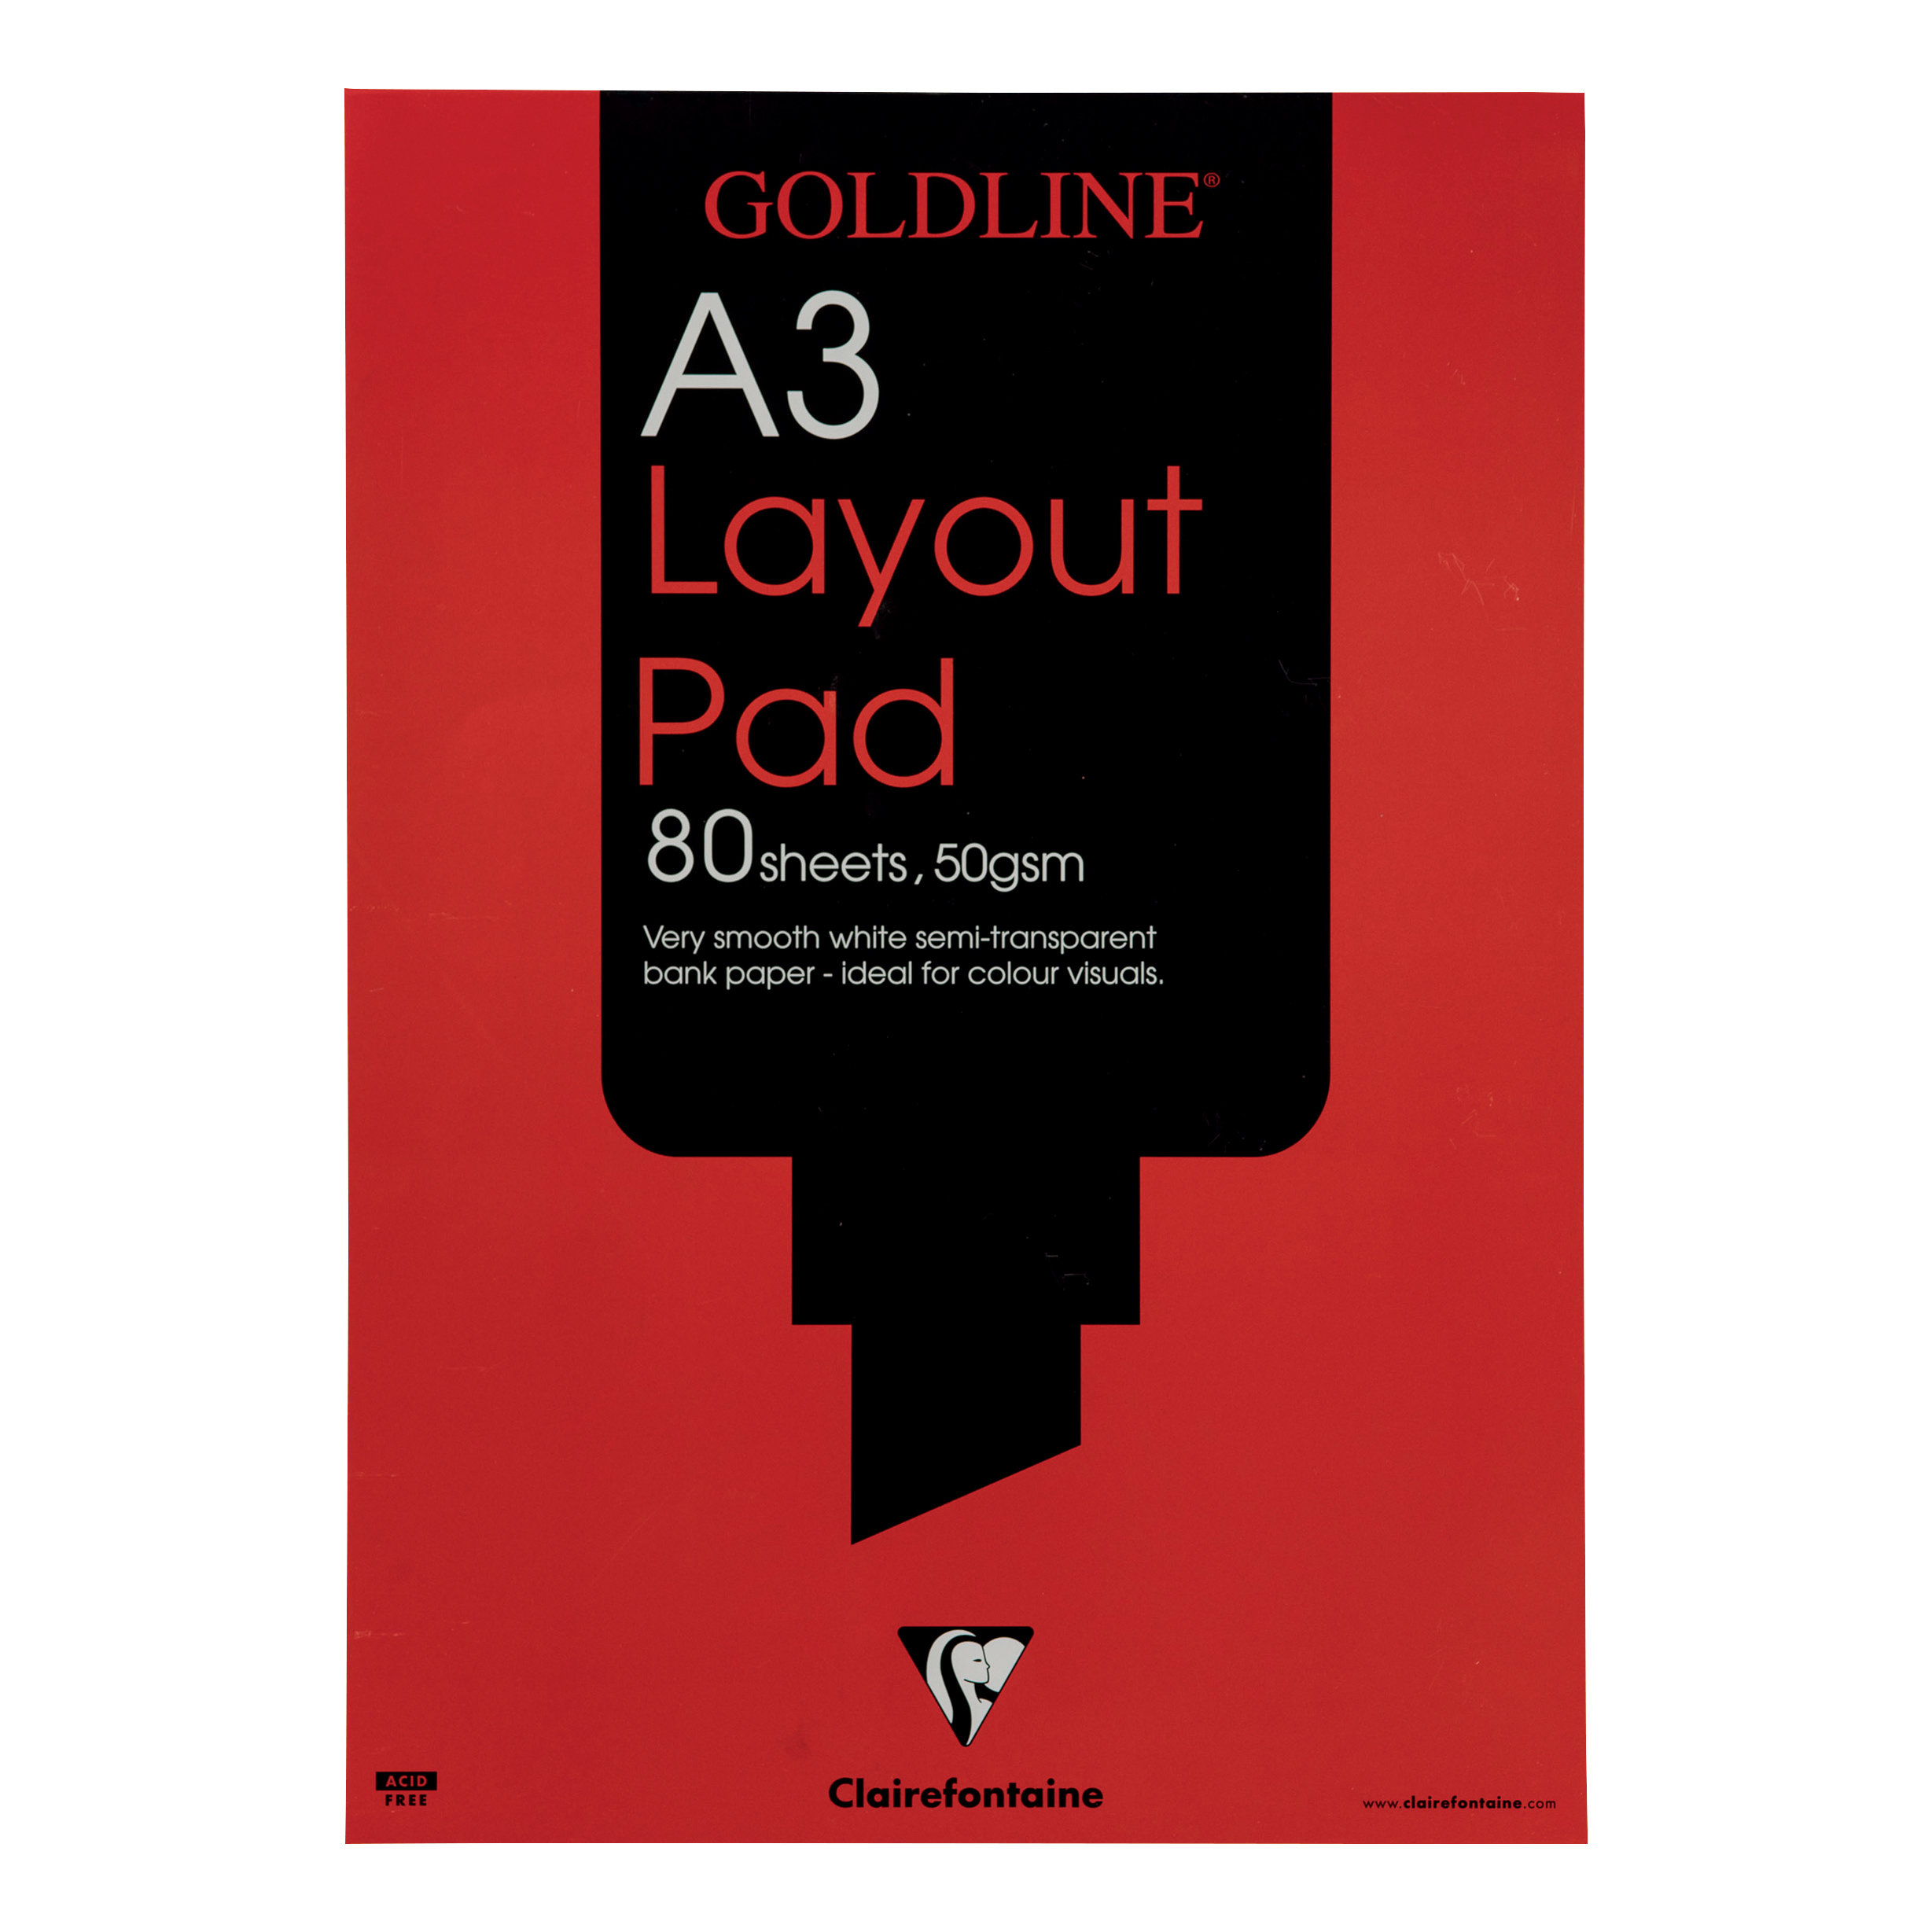 Paper pads or notebooks Goldline Layout Pad 50gsm Acid-free Paper 80 Sheets A3 White Ref GPL1A3Z Pack 5